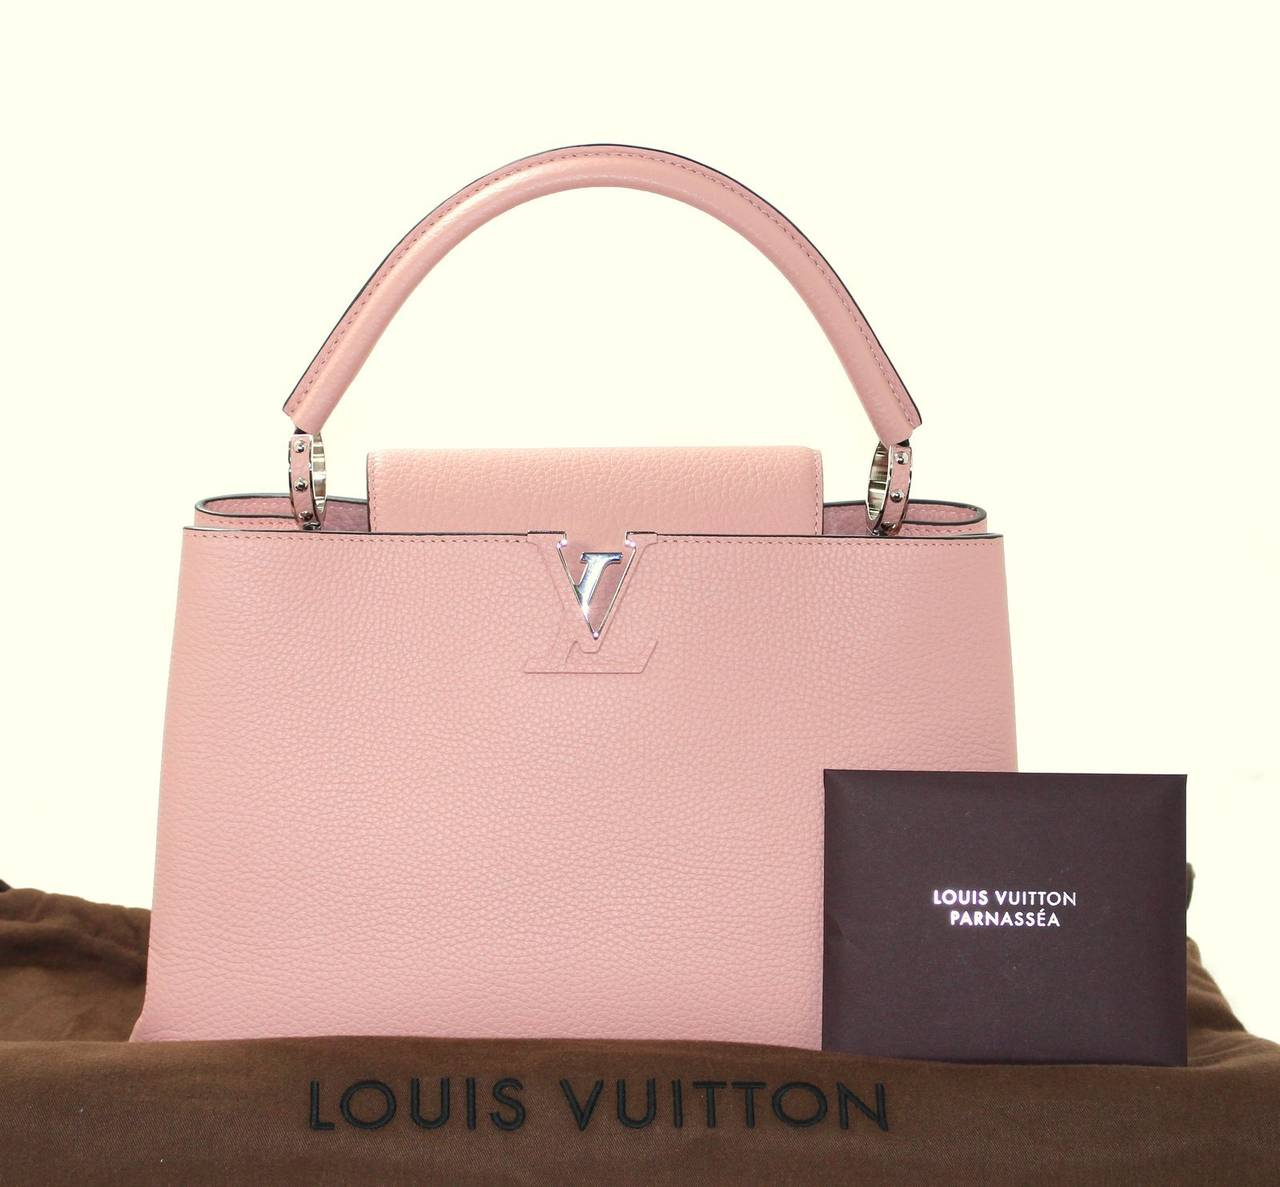 Louis Vuitton  Magnolia Leather Capucines MM Bag- PINK color 10